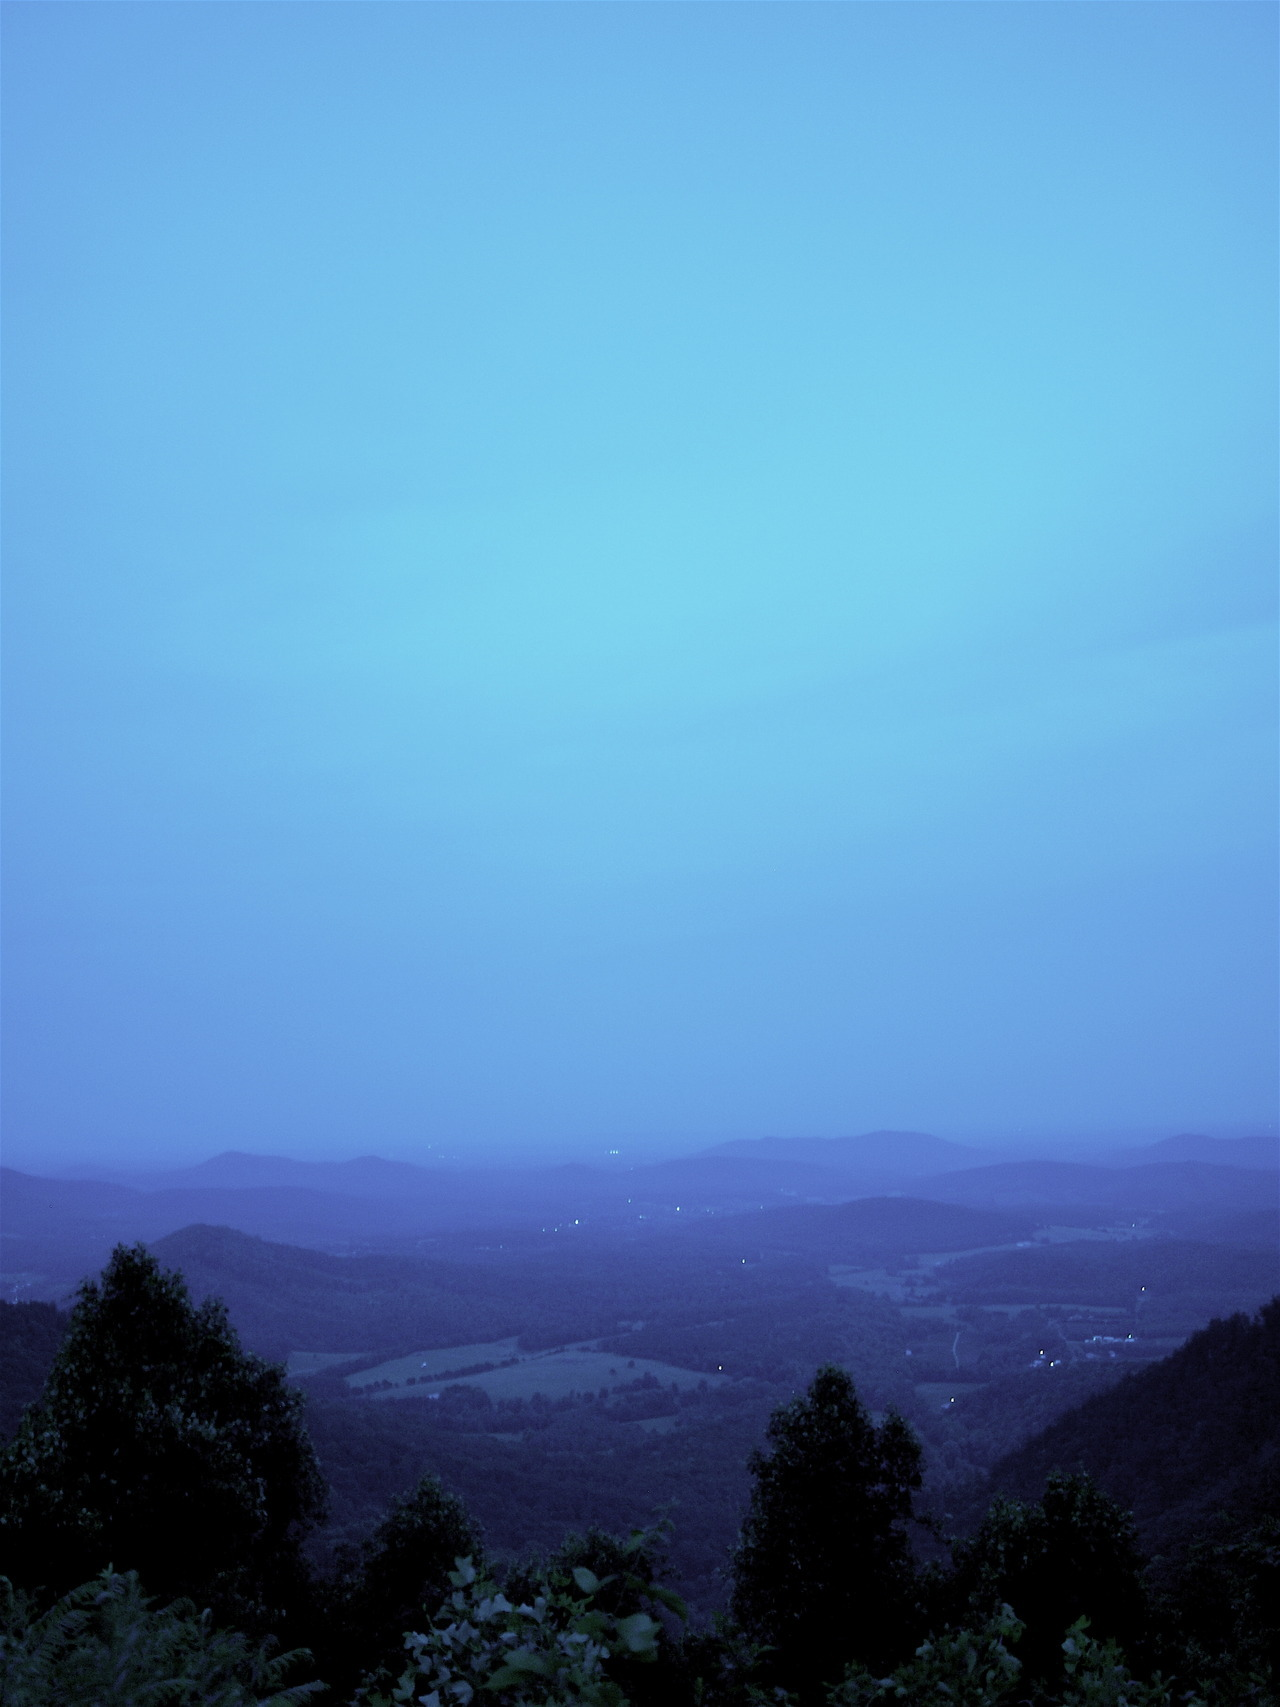 in-north-carolina:  Blue Ridge Parkway, around 8:30 PM on a hot July night. Photography by Ashlie Acevedo (submitted by iamthecatqueen)  needing mountains